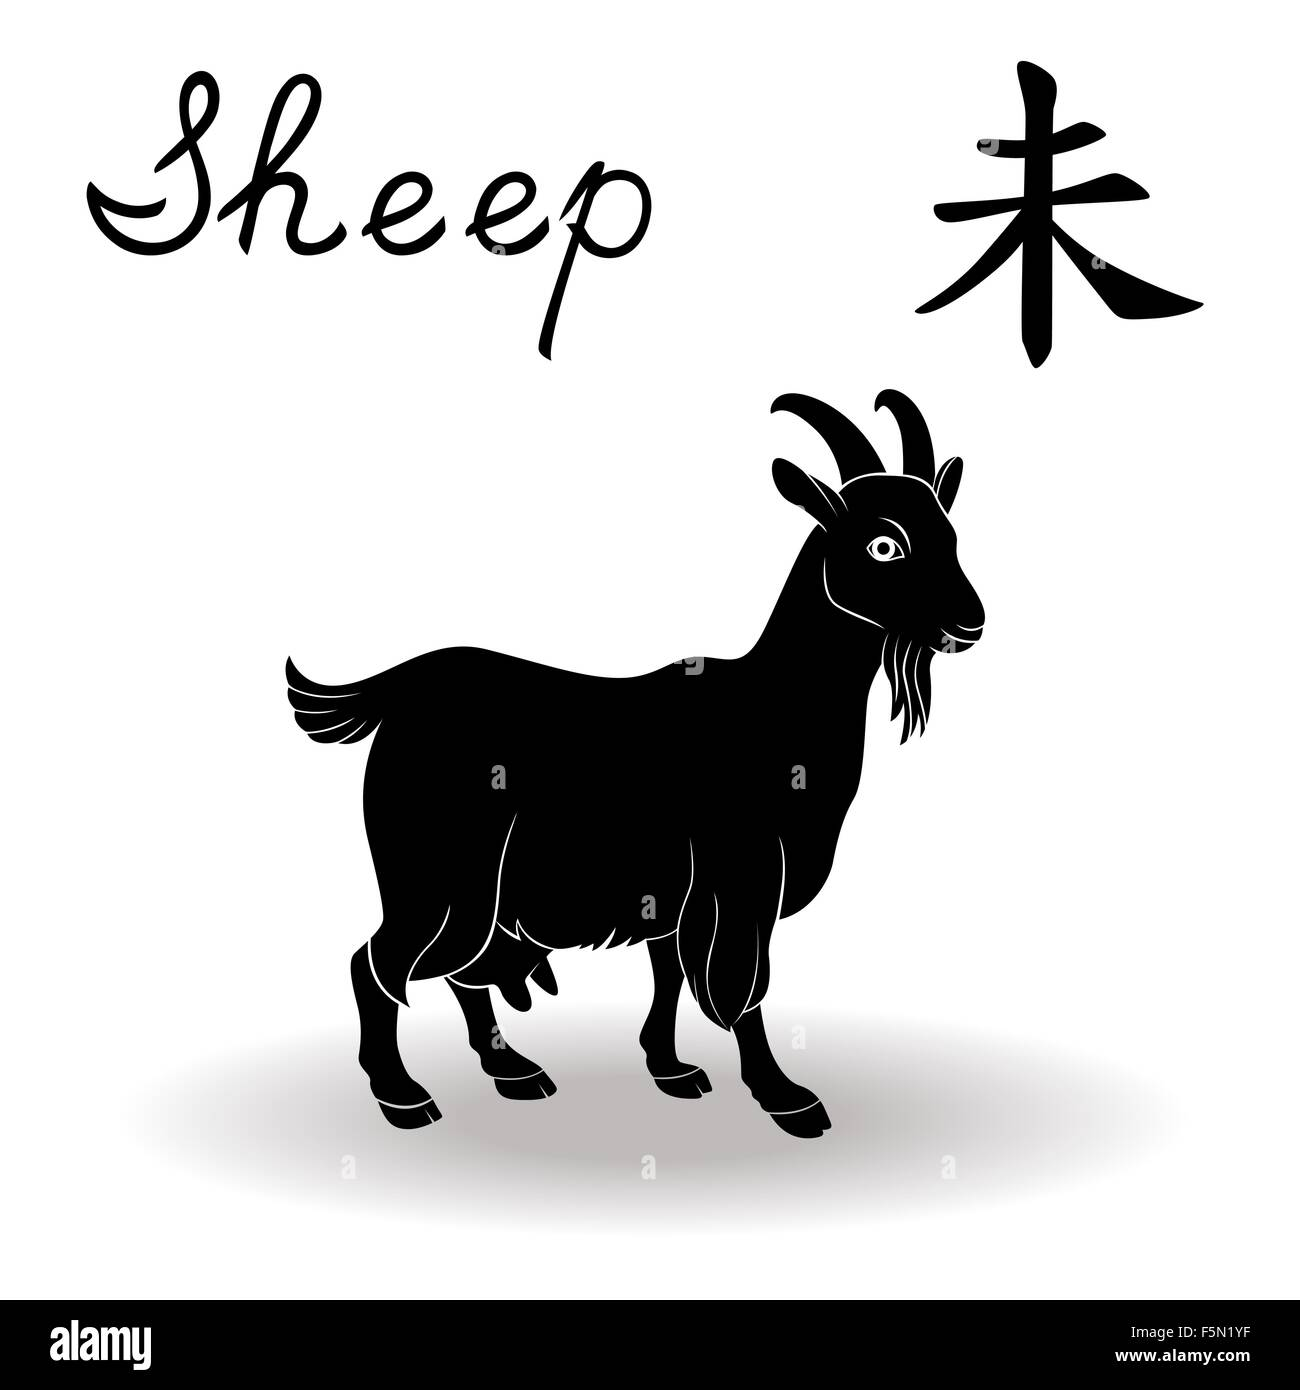 Eastern horoscope for the Goat (Sheep) for 2019 22